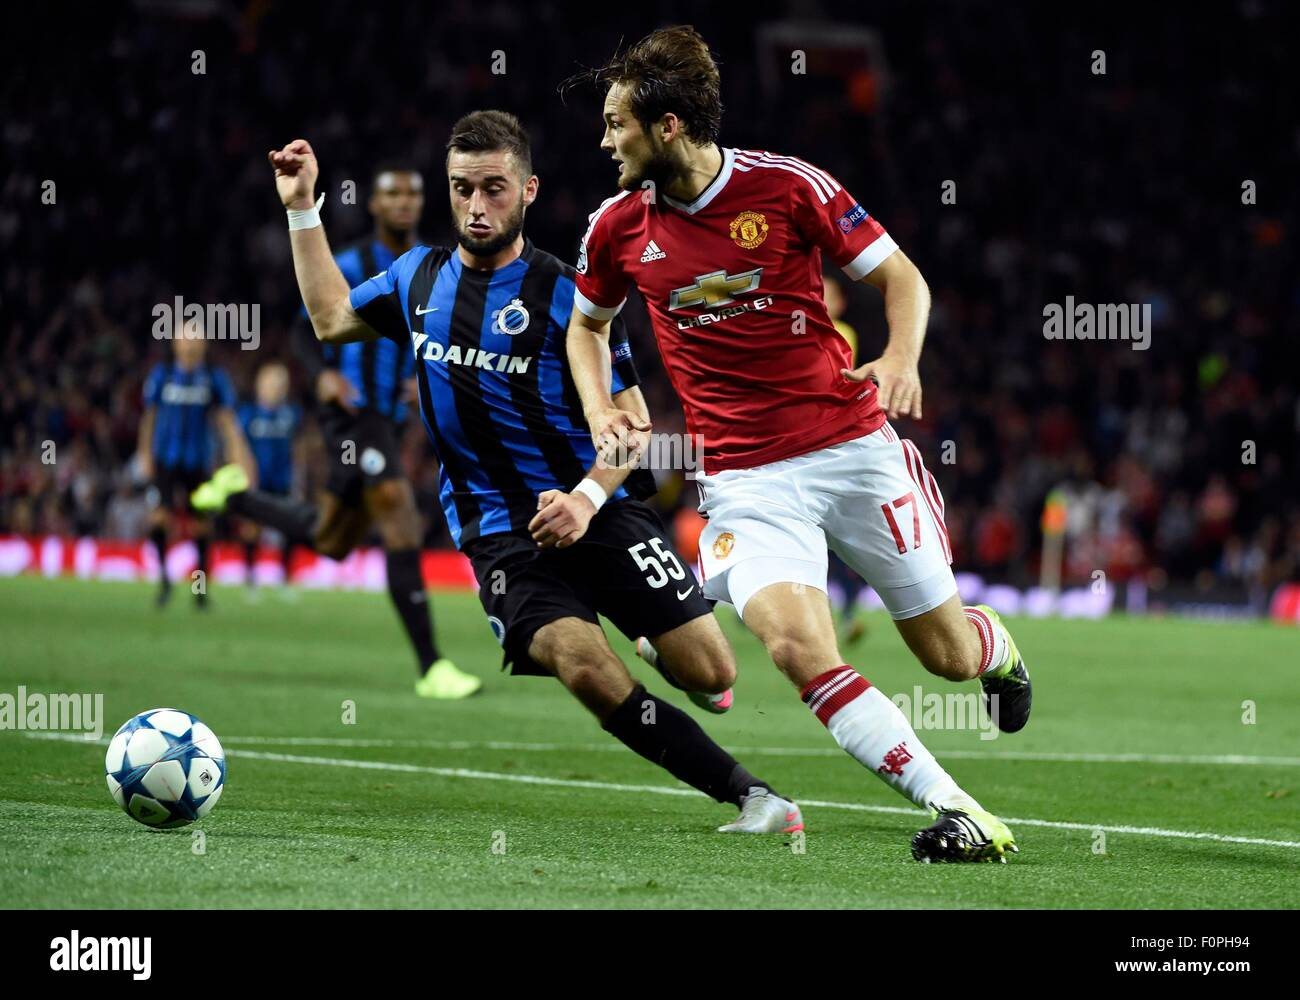 Old Trafford, Manchester, UK. 18th Aug, 2015. UEFA CHampions League match between Manchester United and FC Brugge, - Stock Image